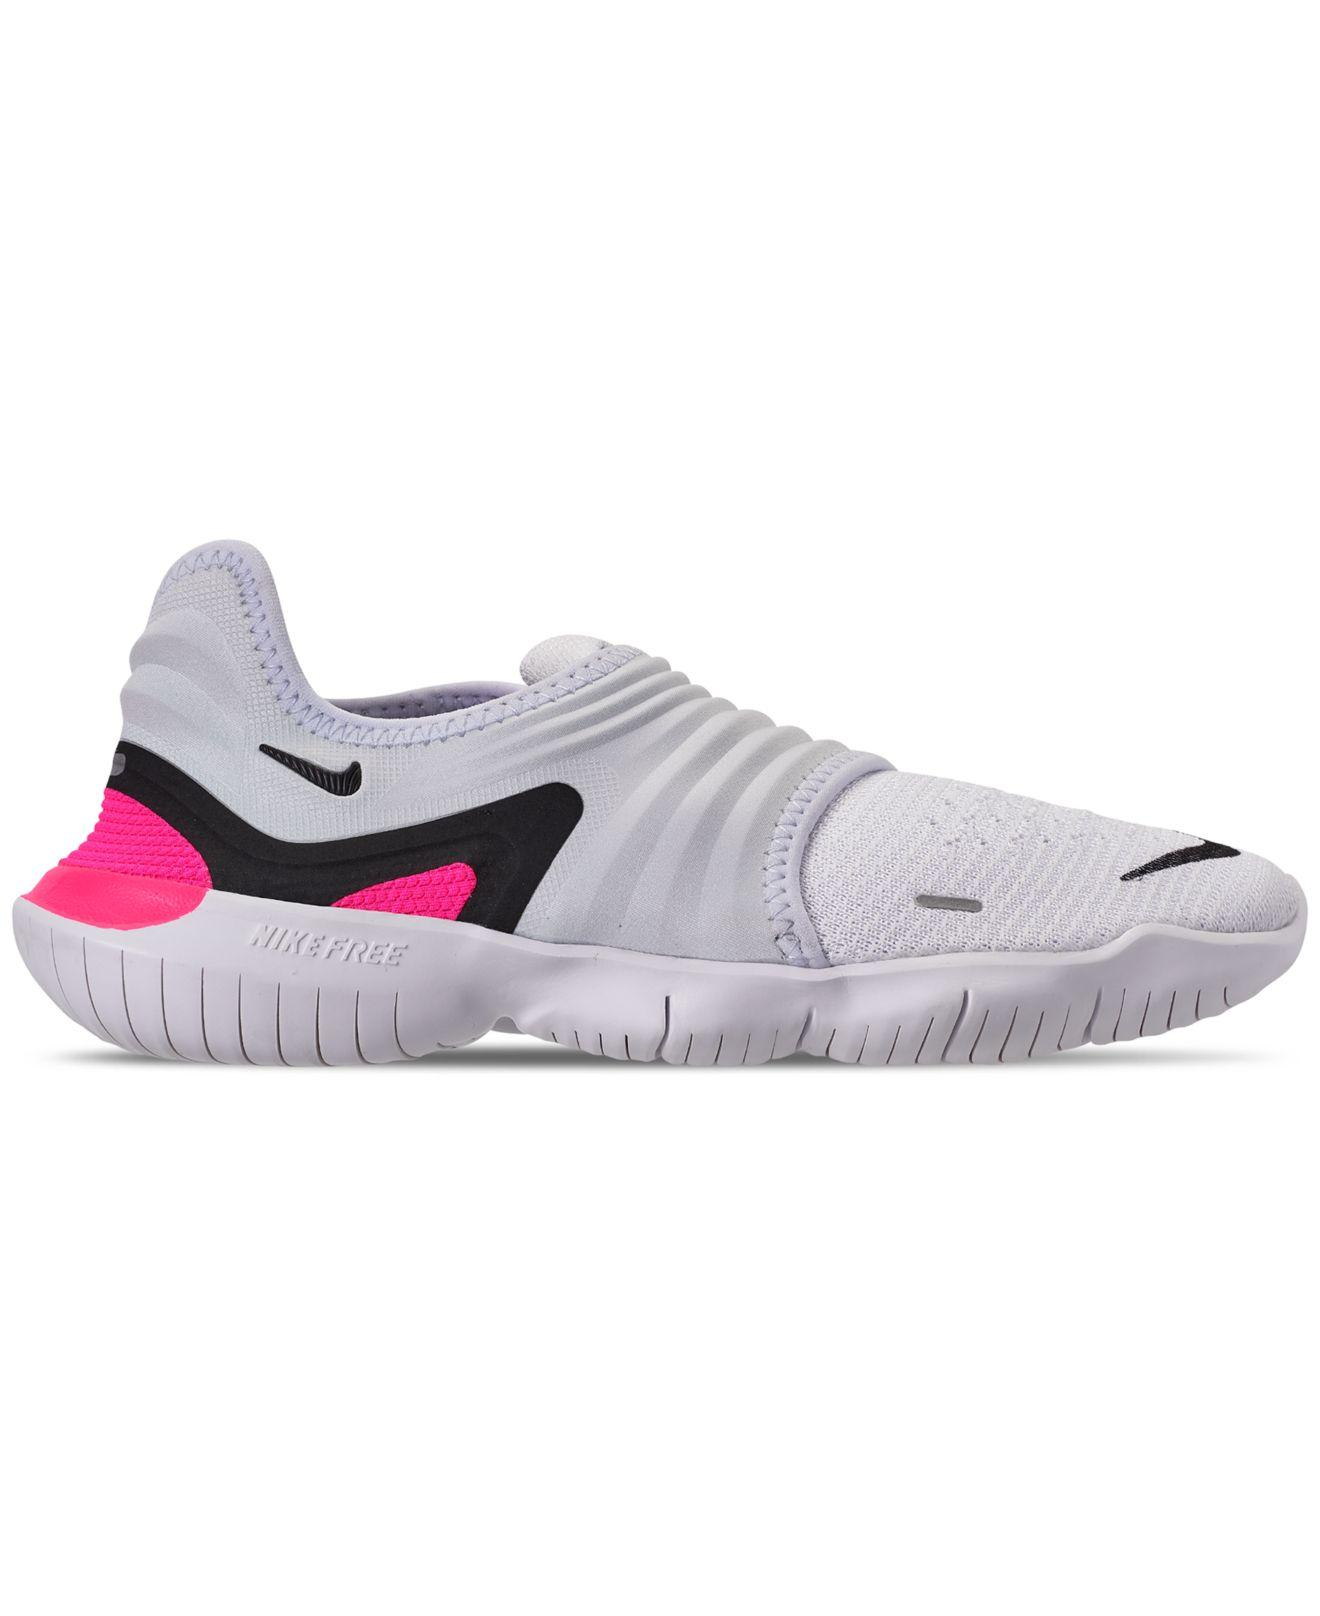 new product dd2de e23c5 Nike Free Rn Flyknit 3.0 Running Sneakers From Finish Line - Lyst